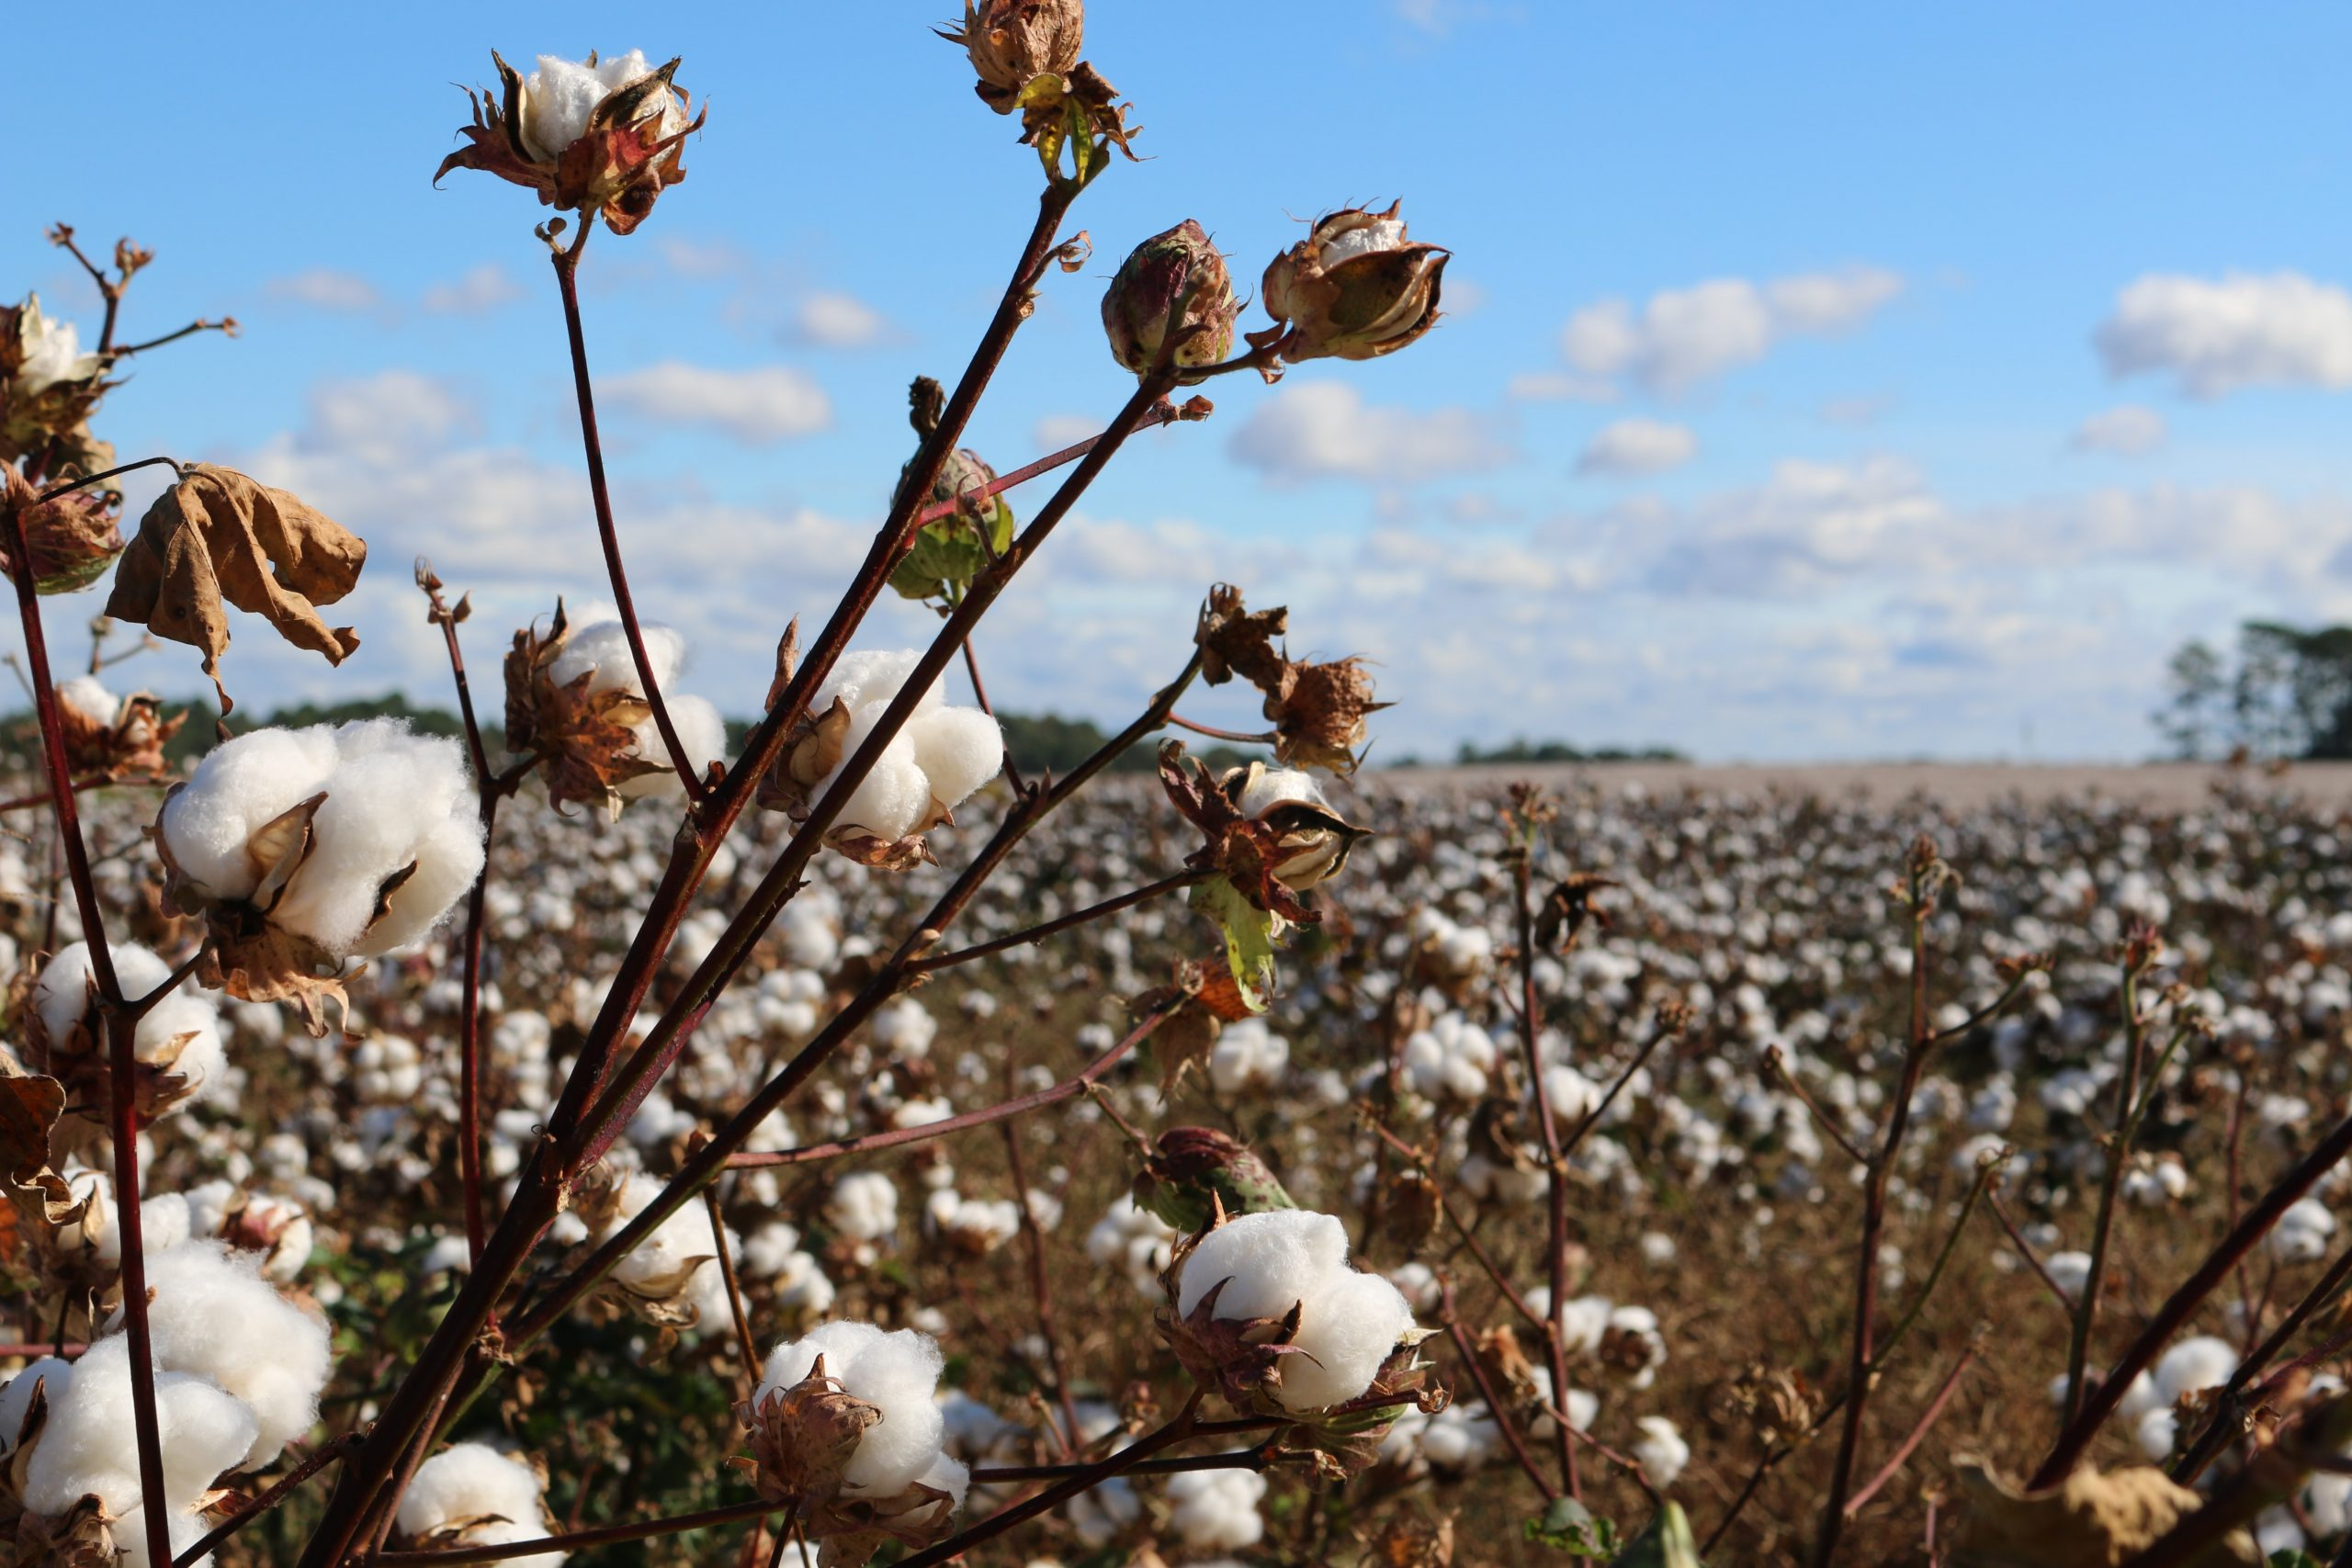 Even with poor rains, genetically modified cotton farmers in Malawi reap big